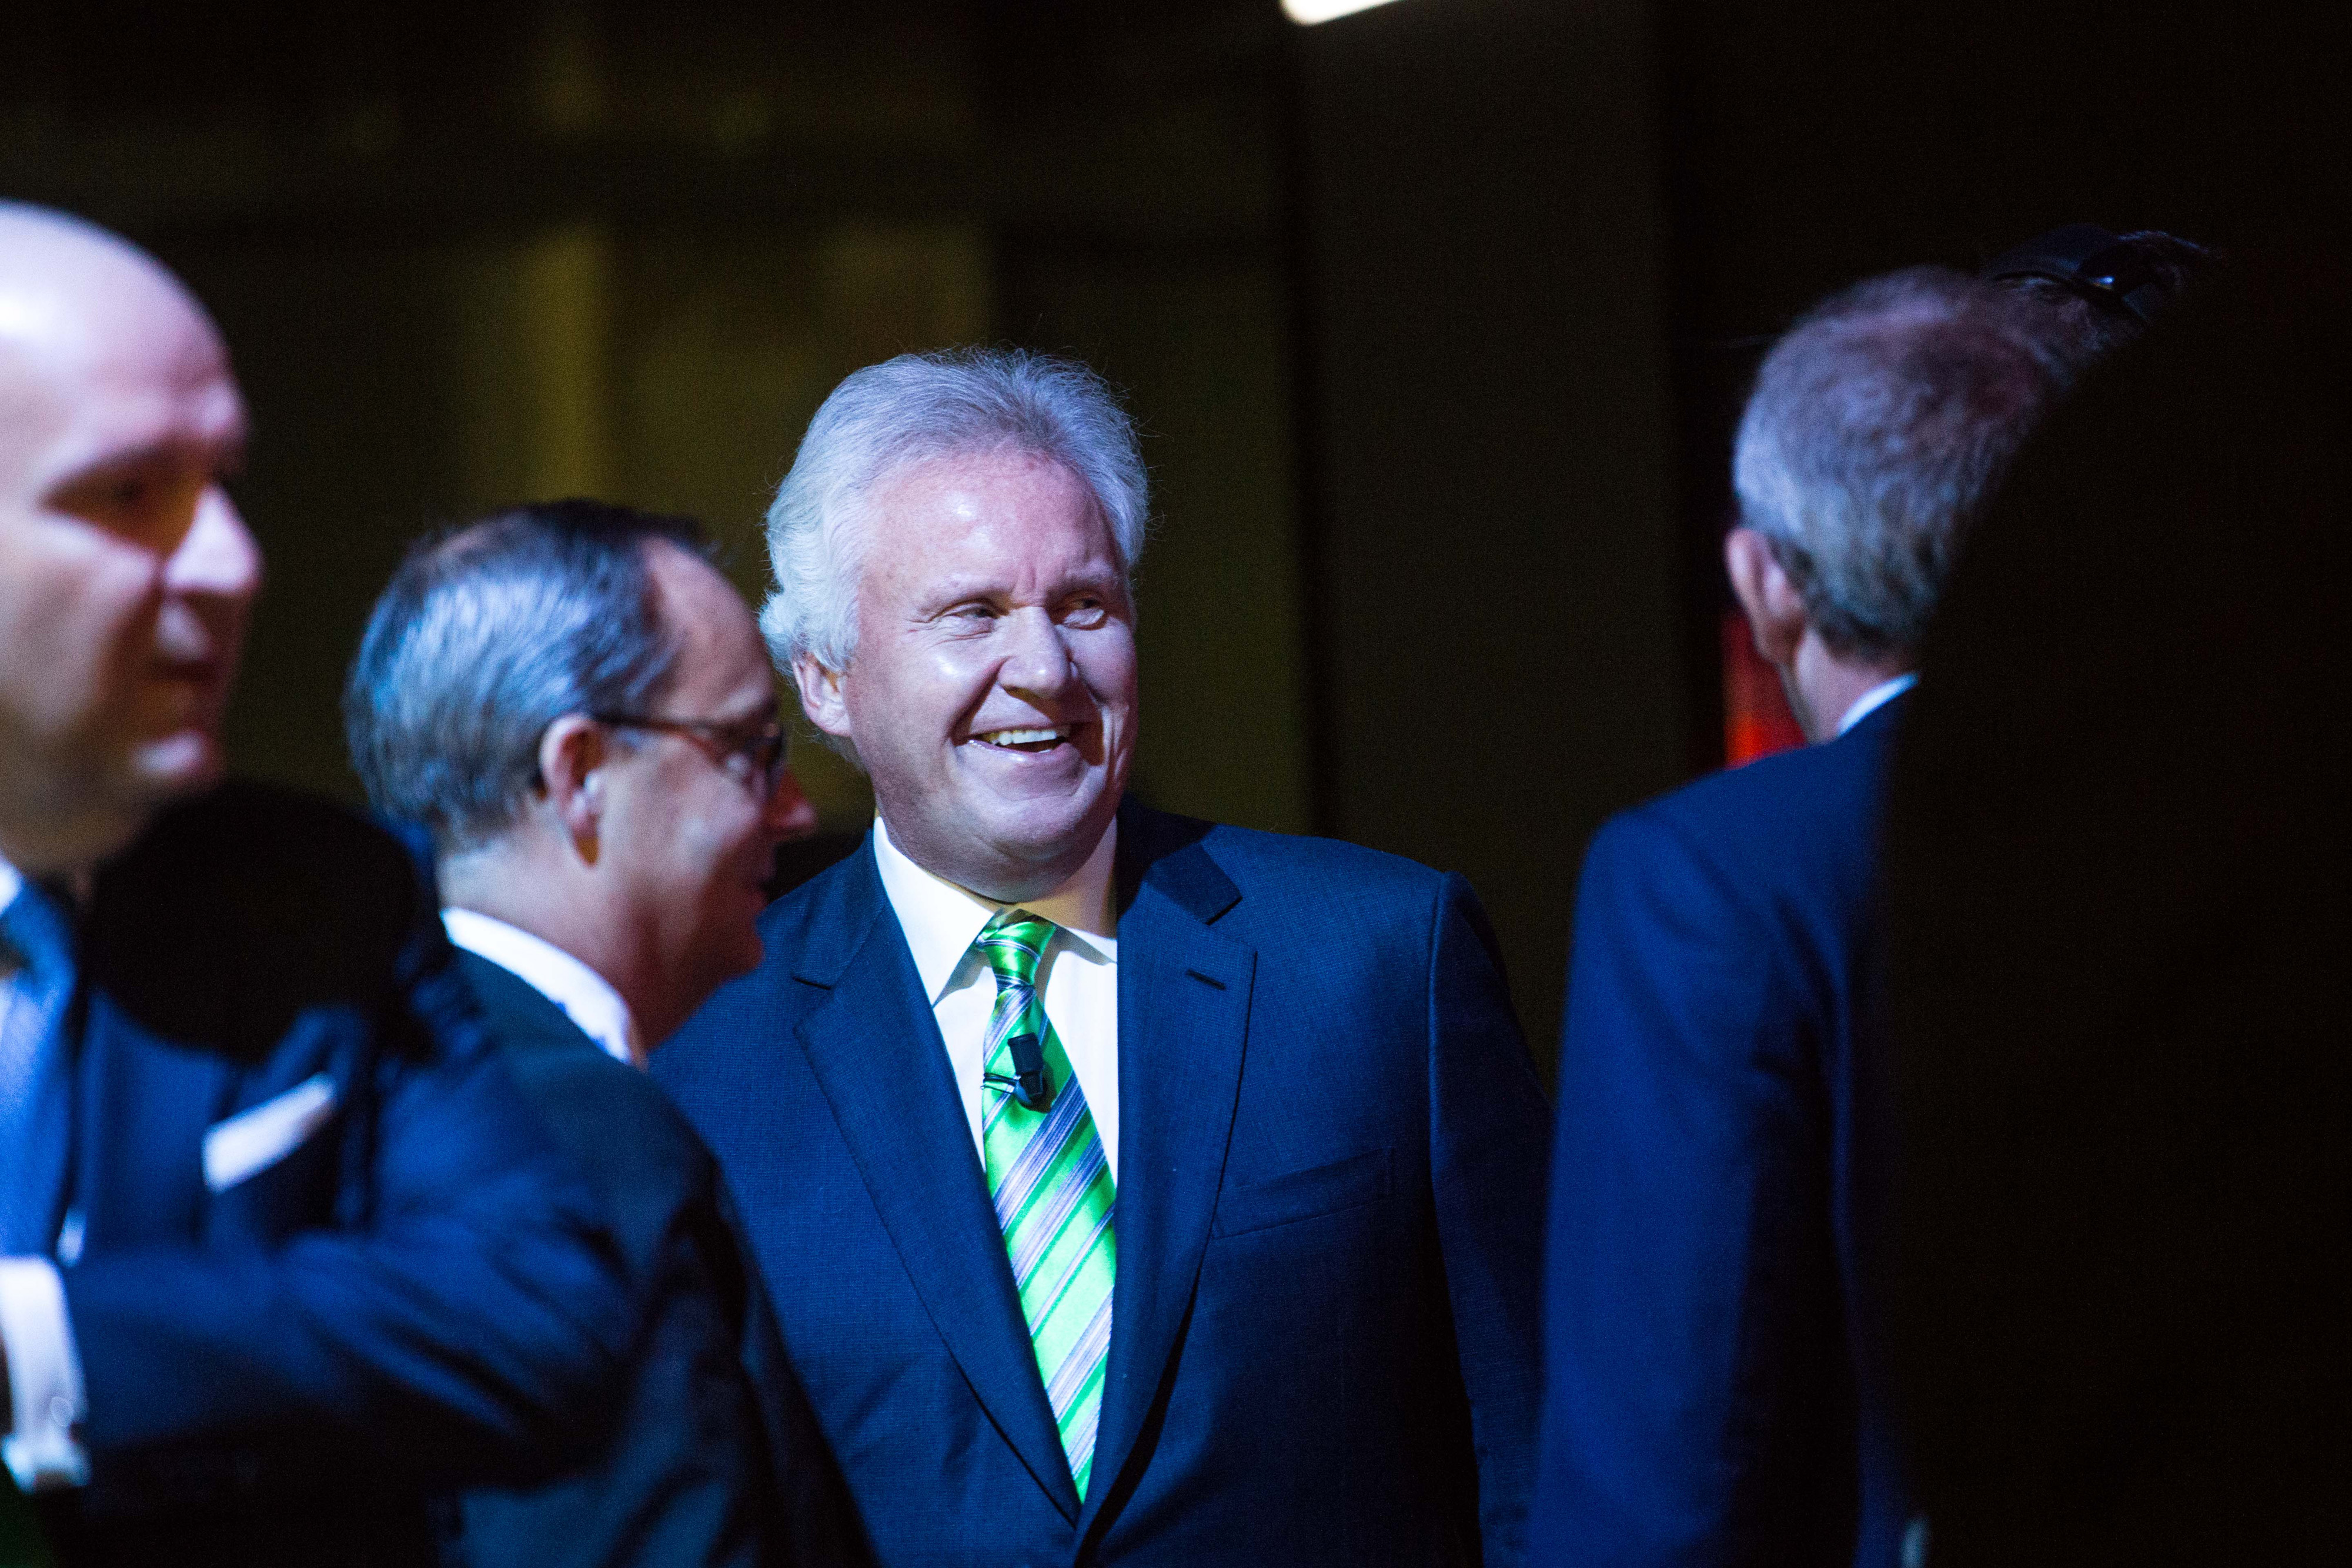 General Electric Co. Chief Executive Officer Jeffrey Immelt Attends Minds + Machines Digital Industry Event